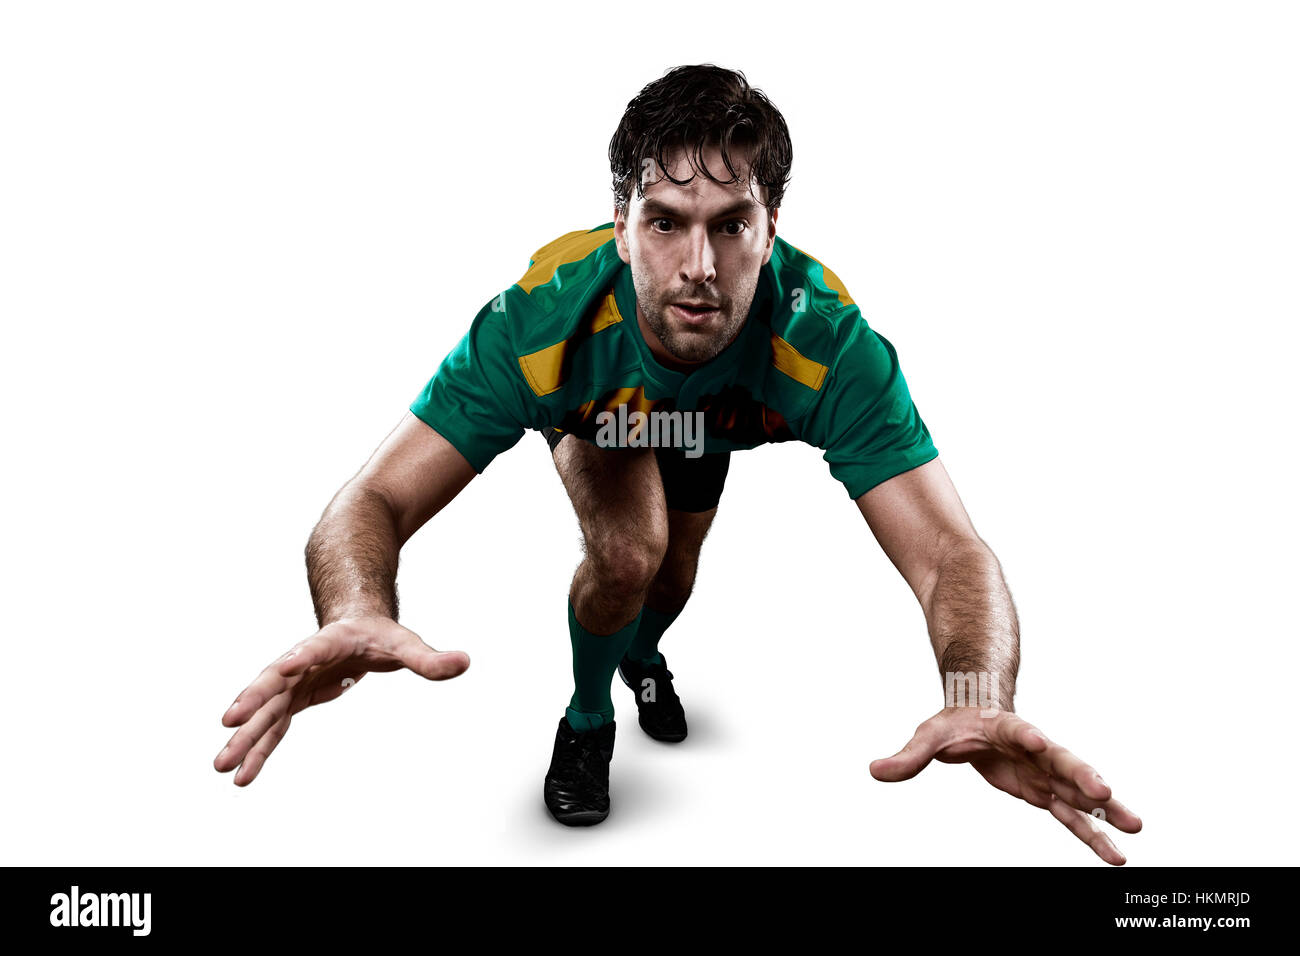 Rugby player in a green and gold uniform giving a tackle. White Background Stock Photo